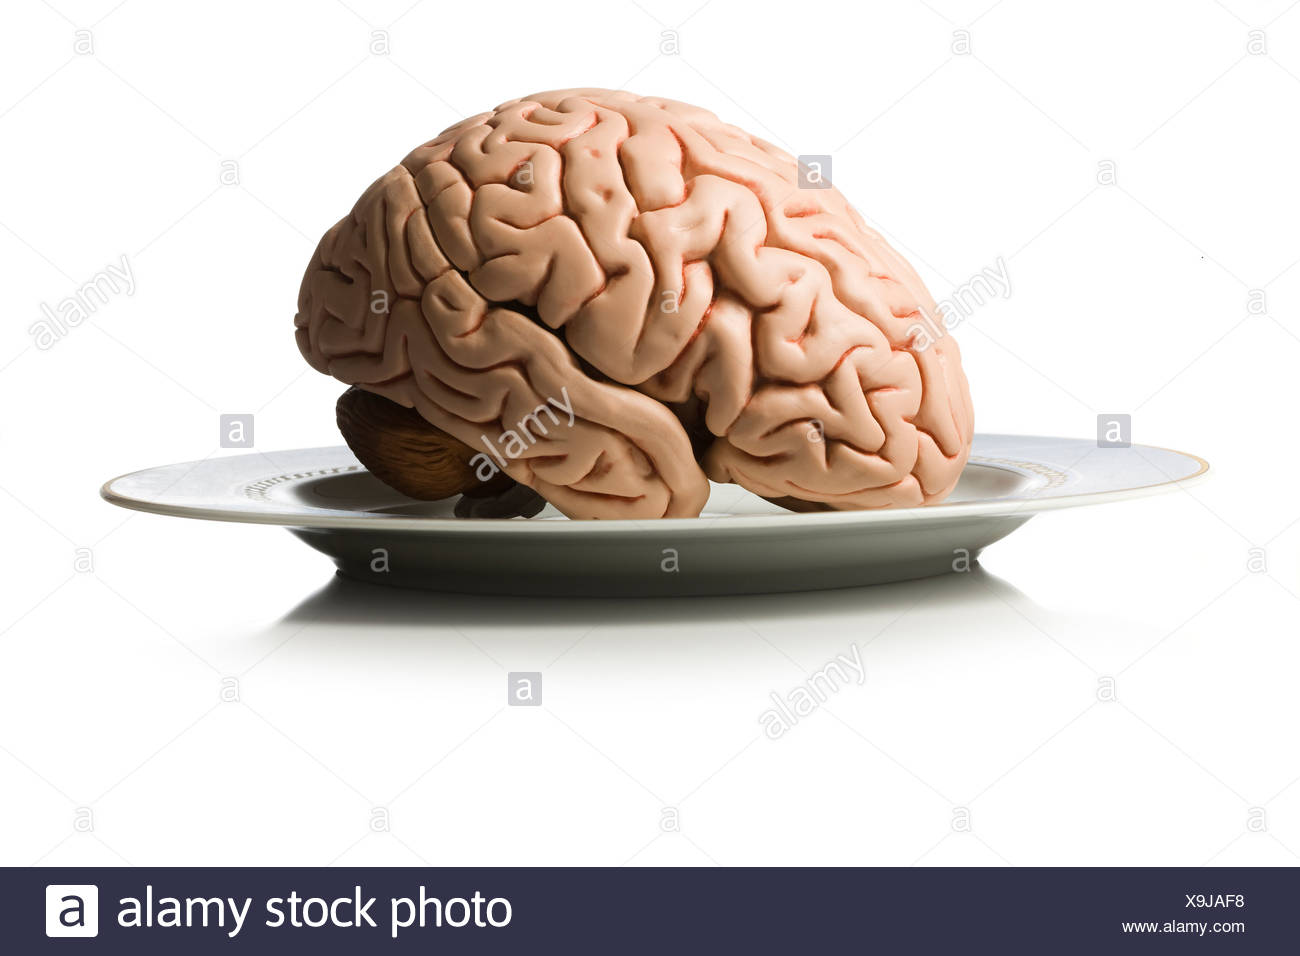 brain on a plate - Stock Image